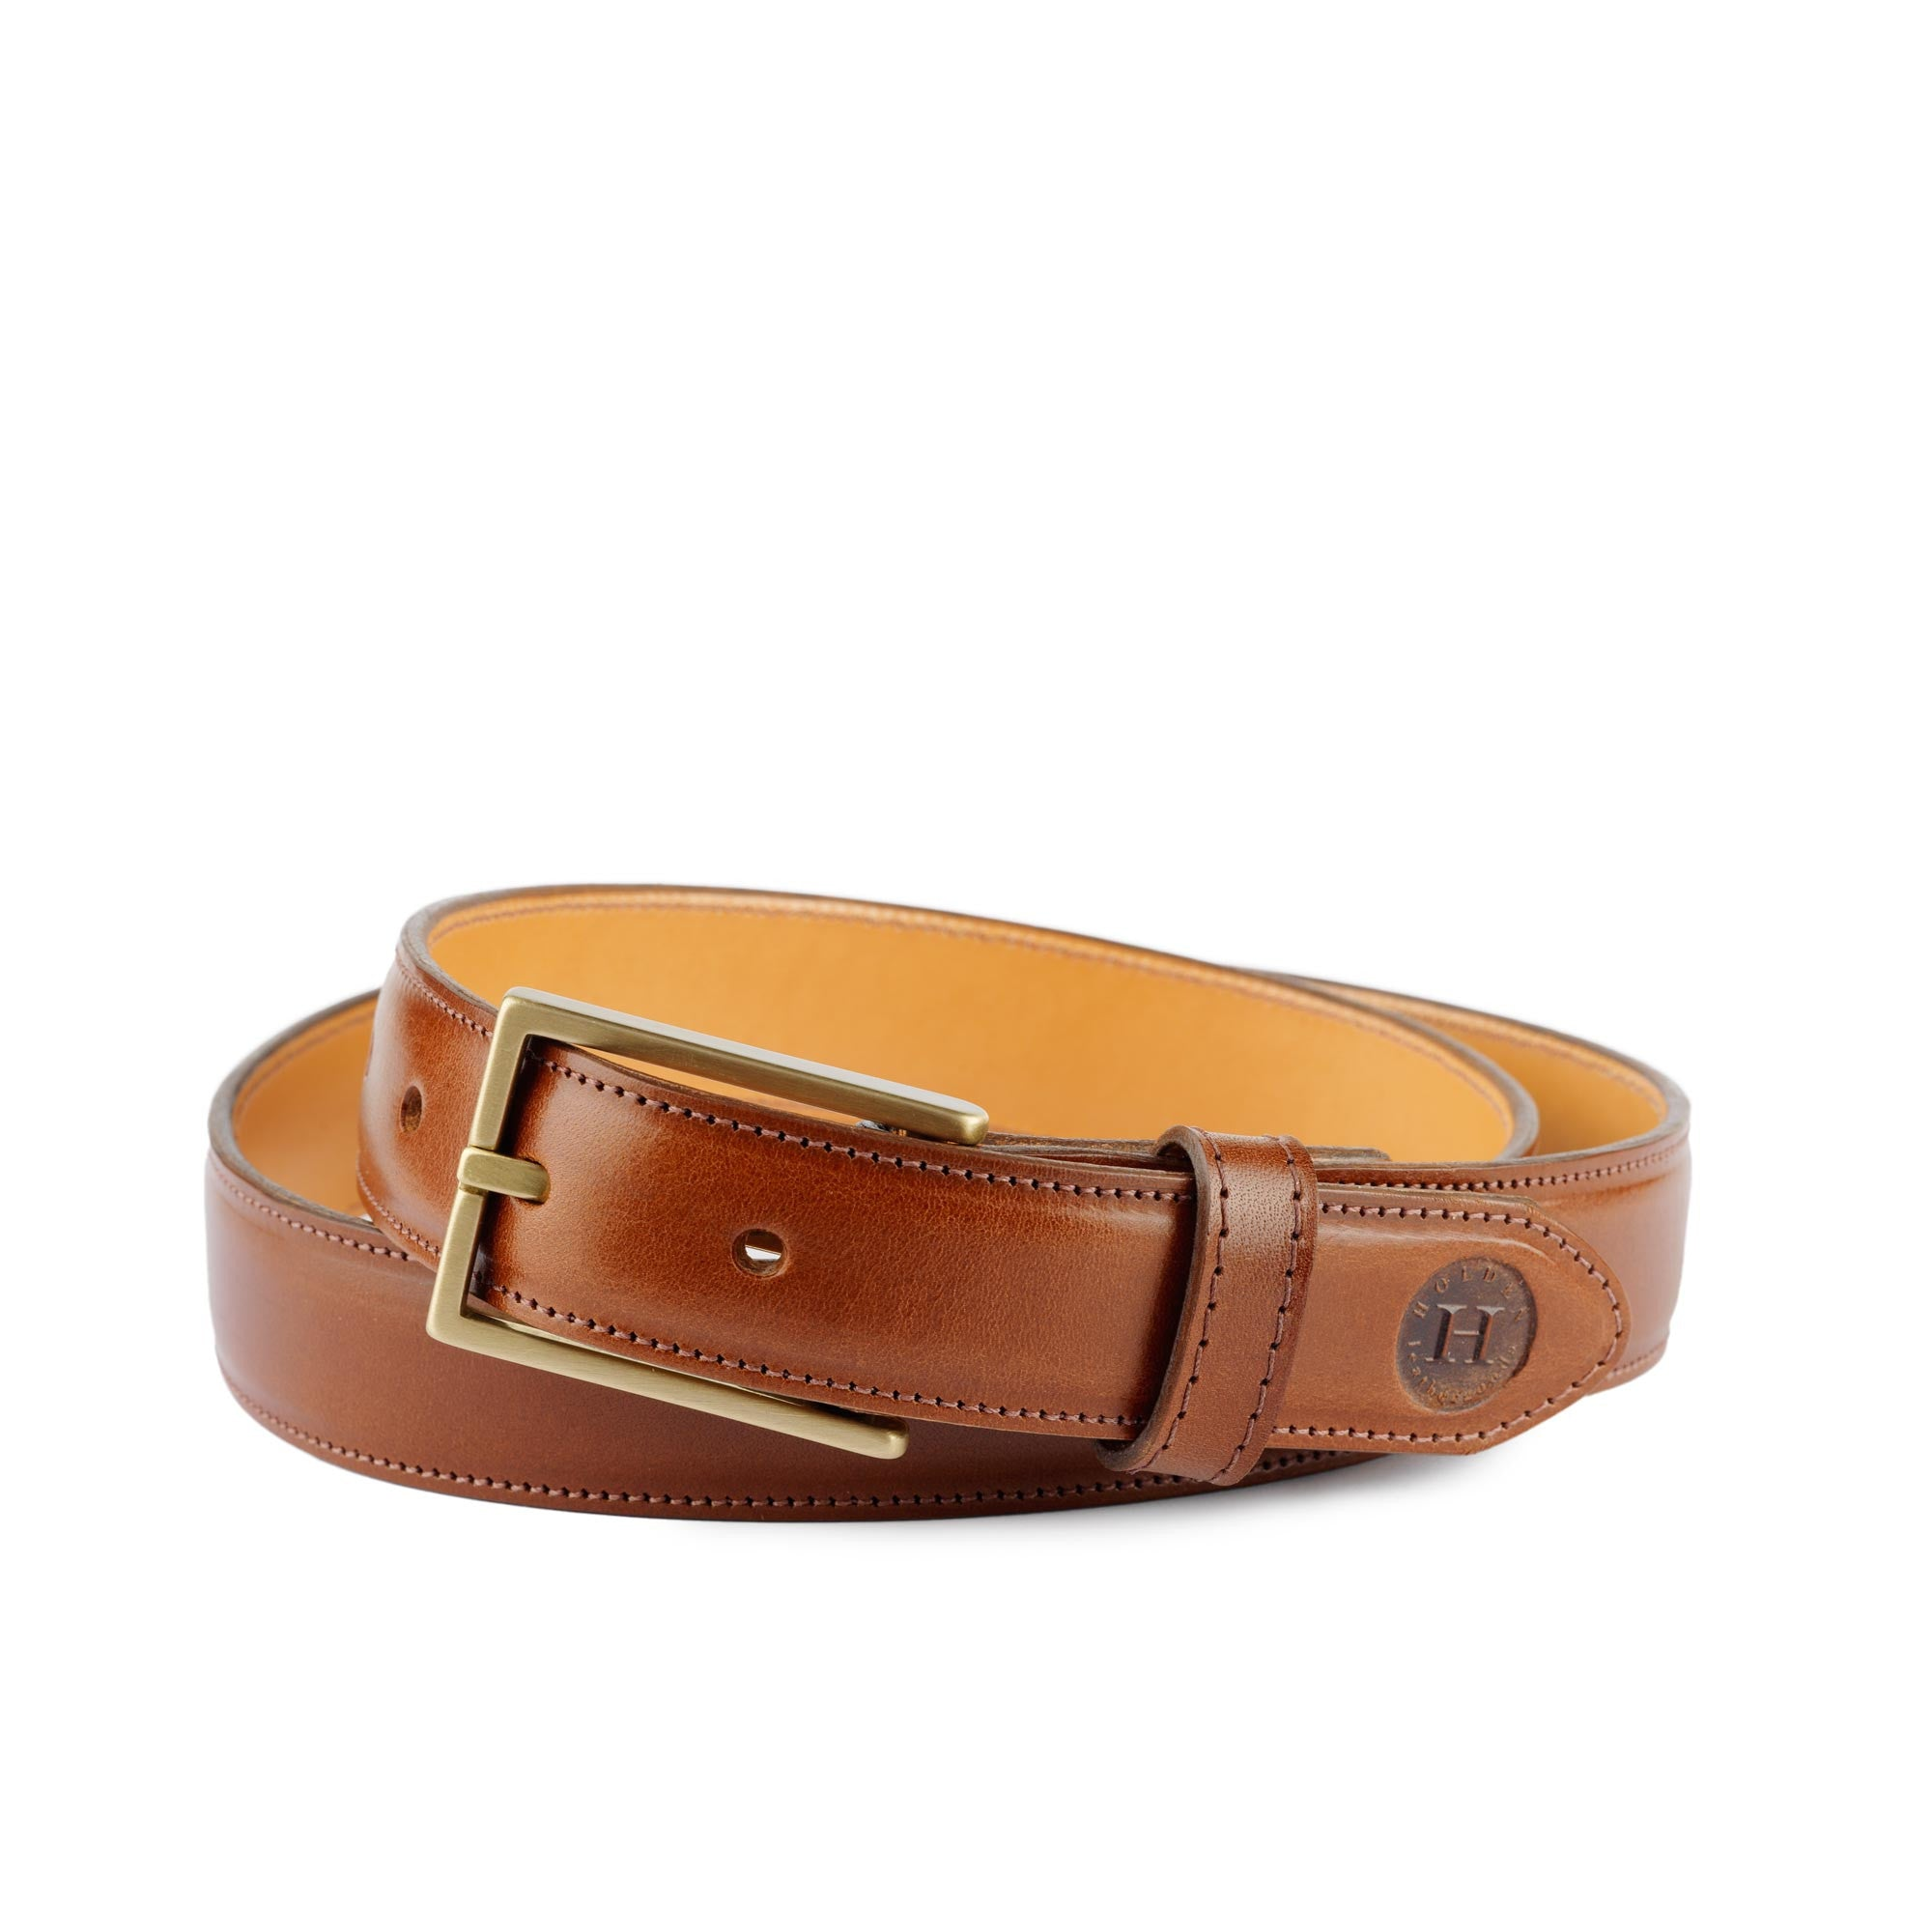 Holden Leather Dress Belt DB1 Chestnut - Holden Leathergoods, leather bags handmade in Ireland